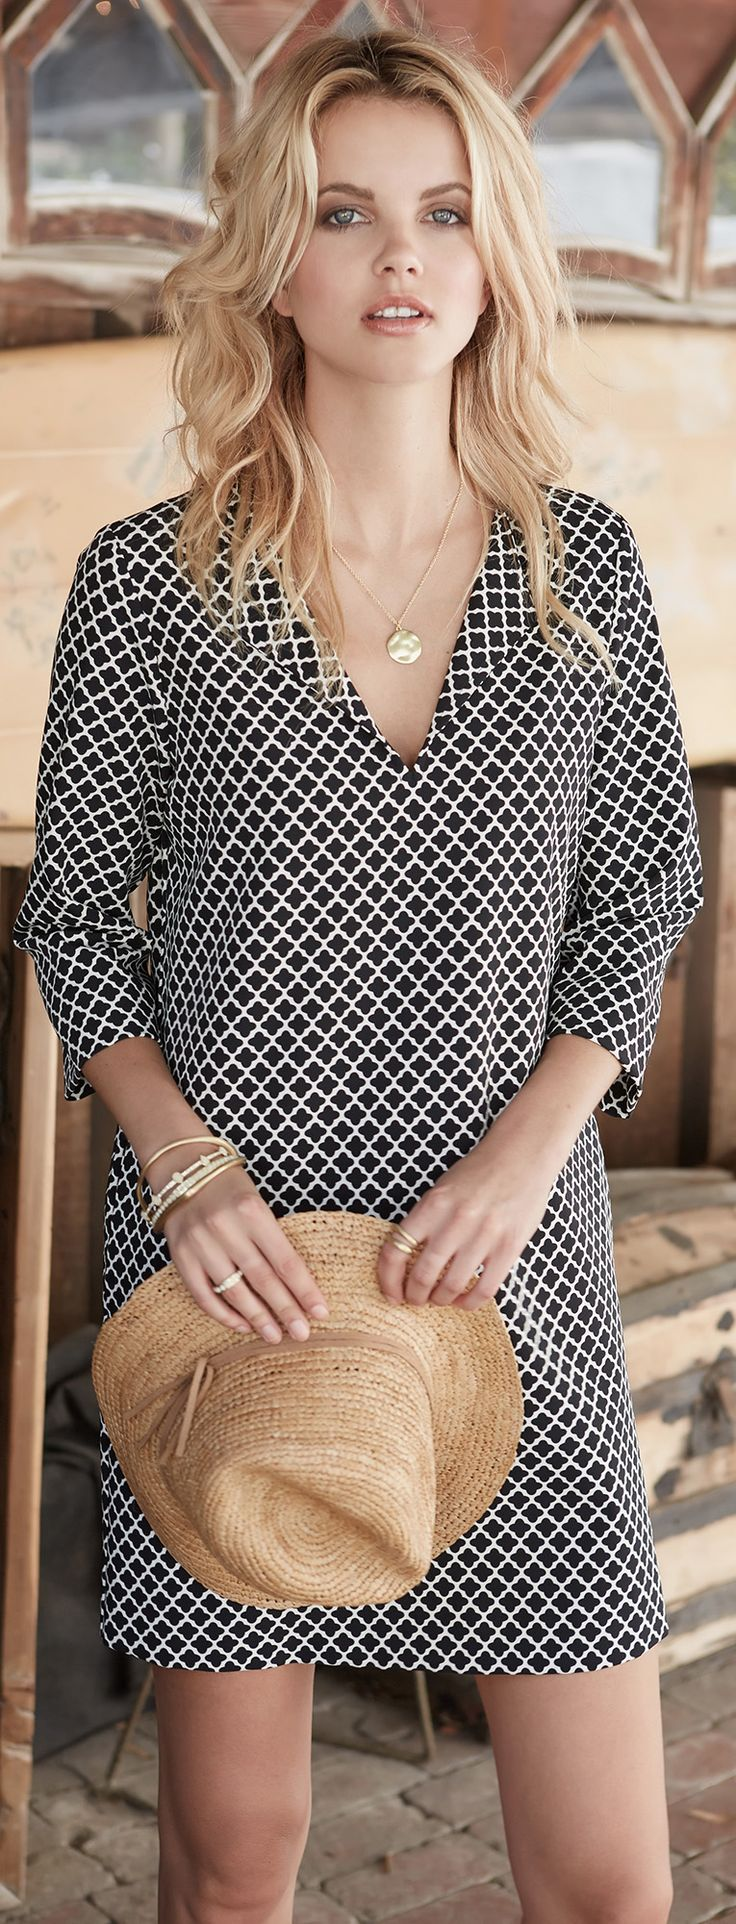 Great shift dress -- casual but appropriate for work